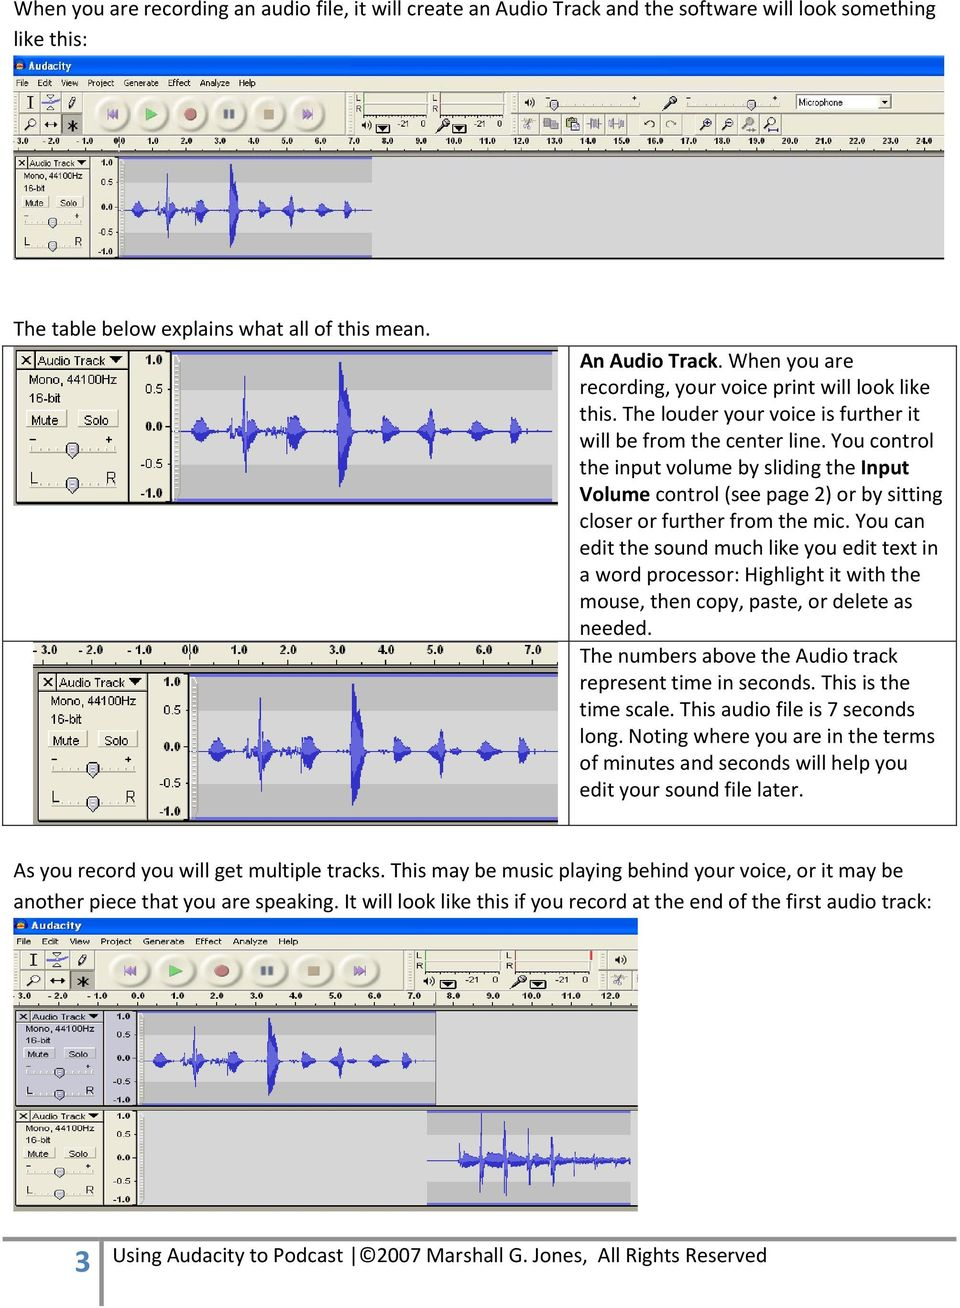 You control the input volume by sliding the Input Volume control (see page 2) or by sitting closer or further from the mic.